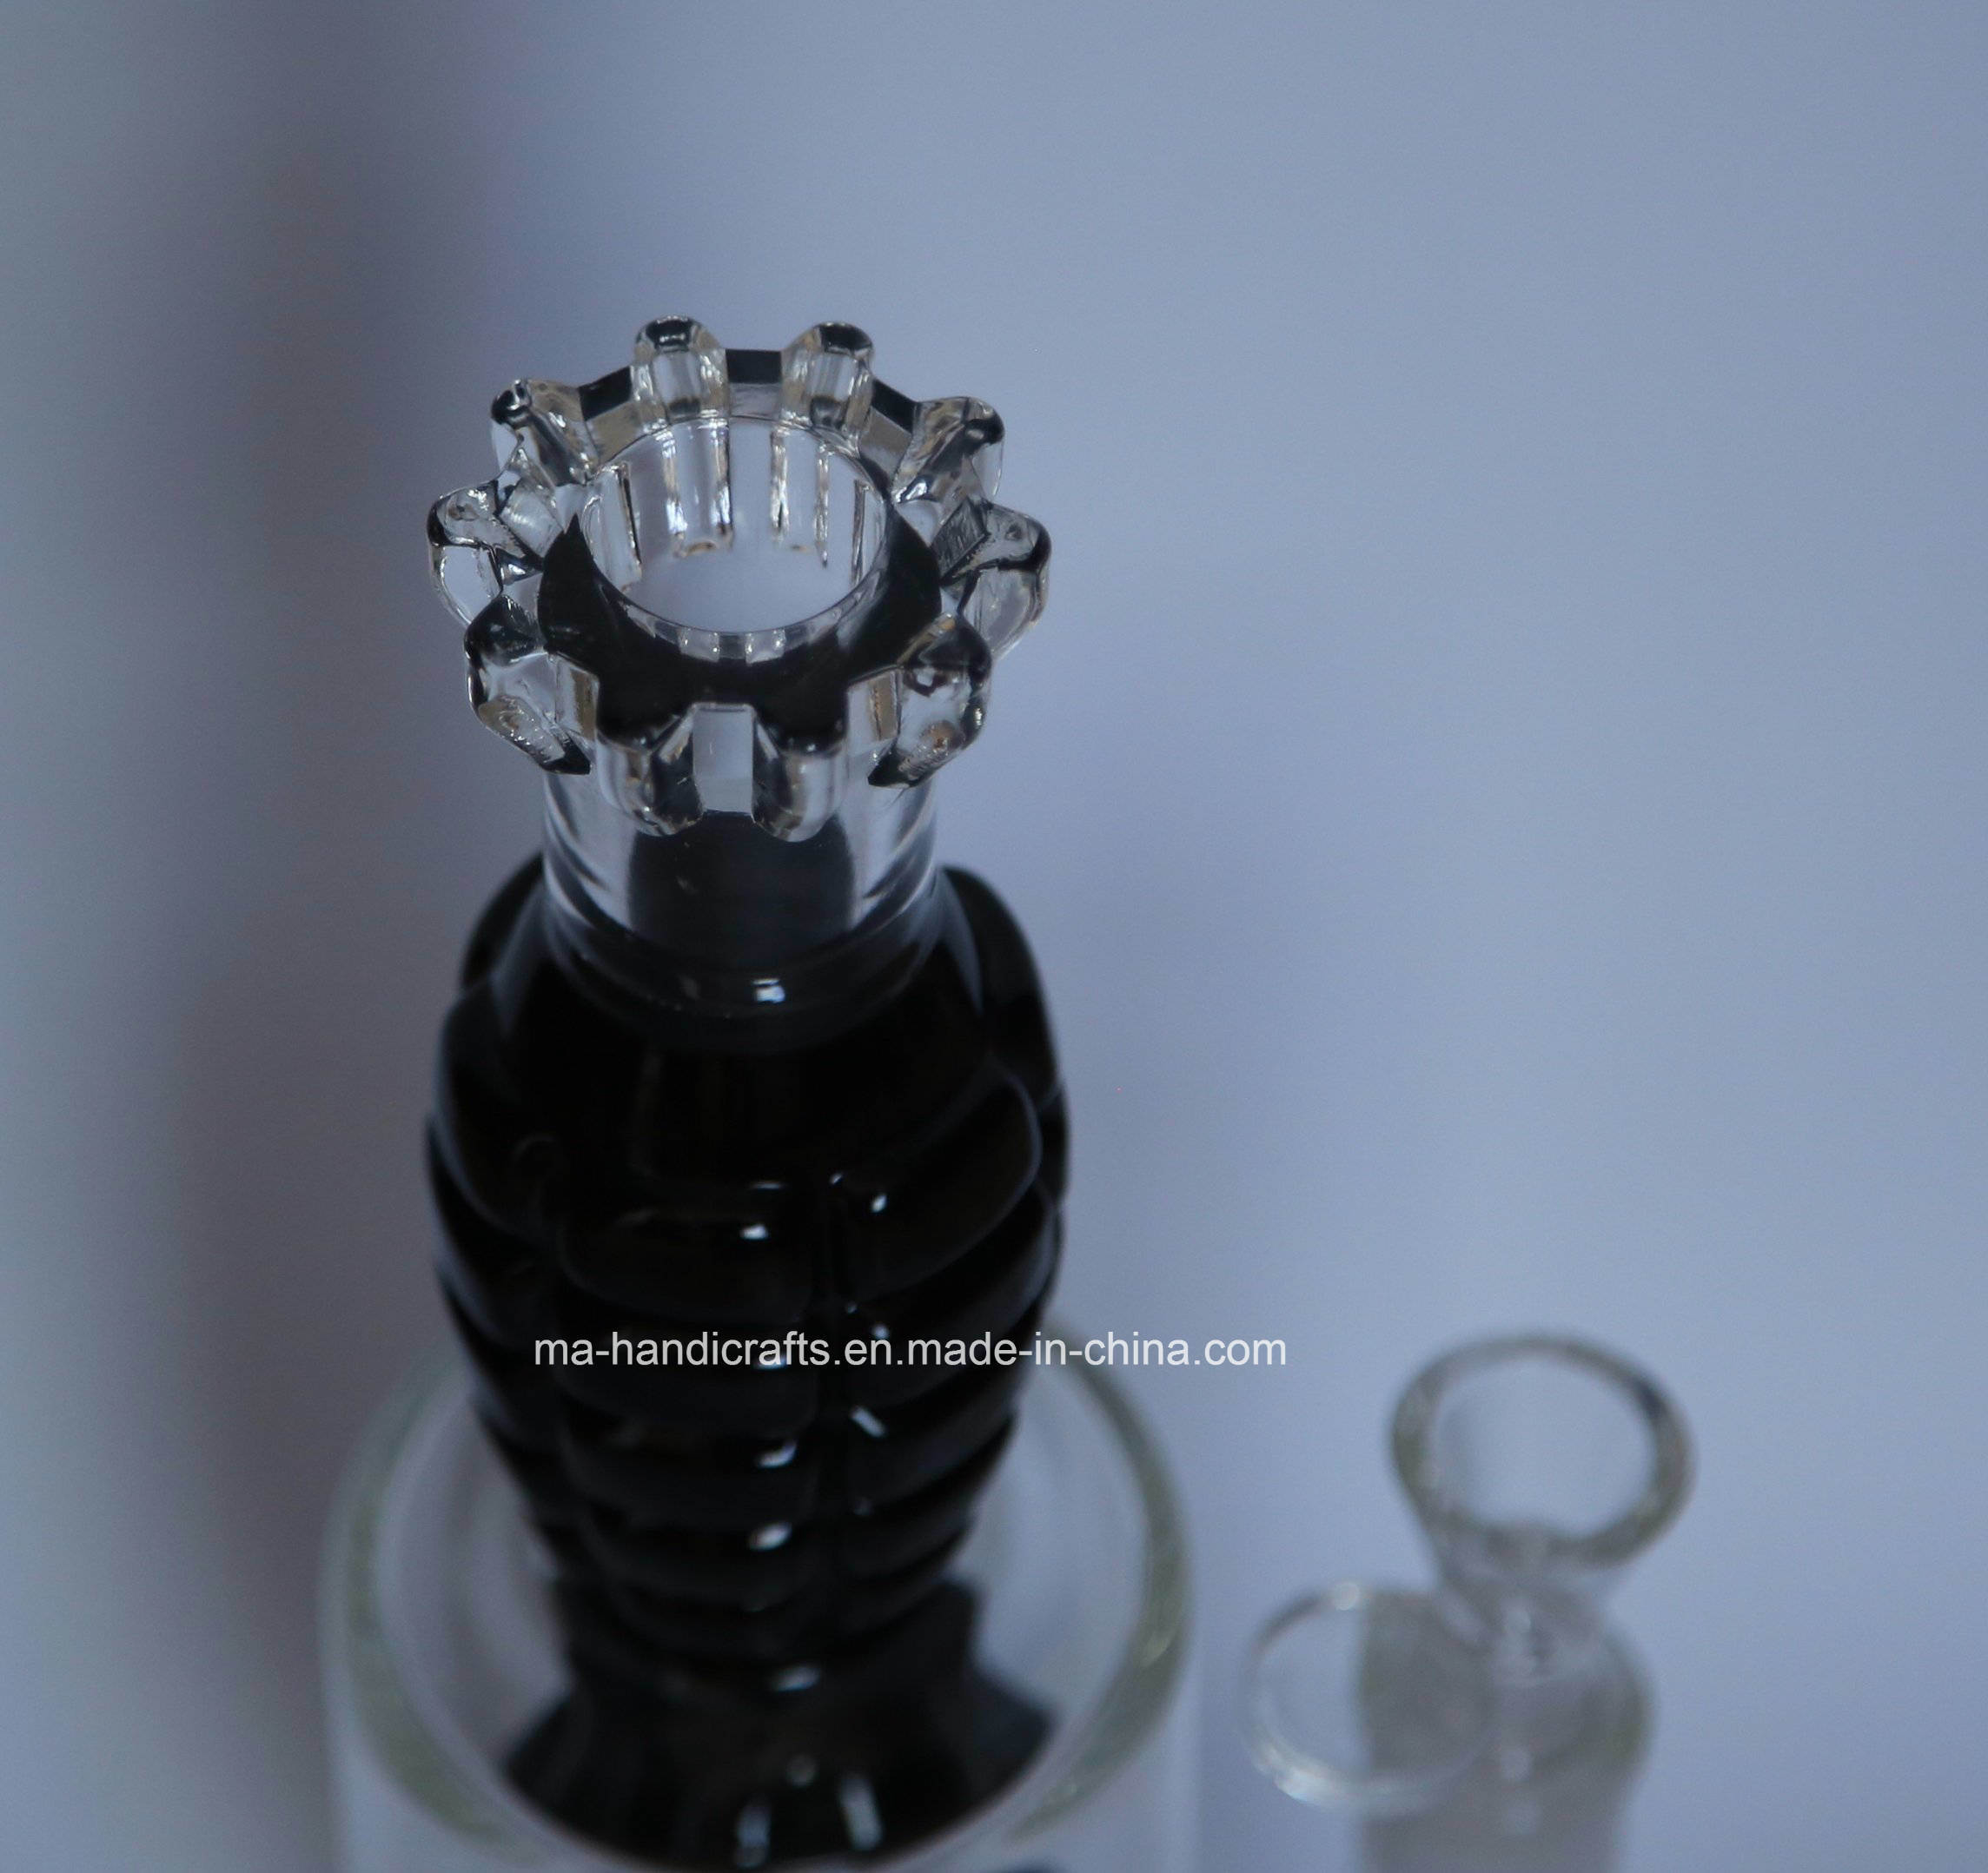 Grenade Smoking Glass Water Pipes/Tobacco Pipes/Glass Pipes